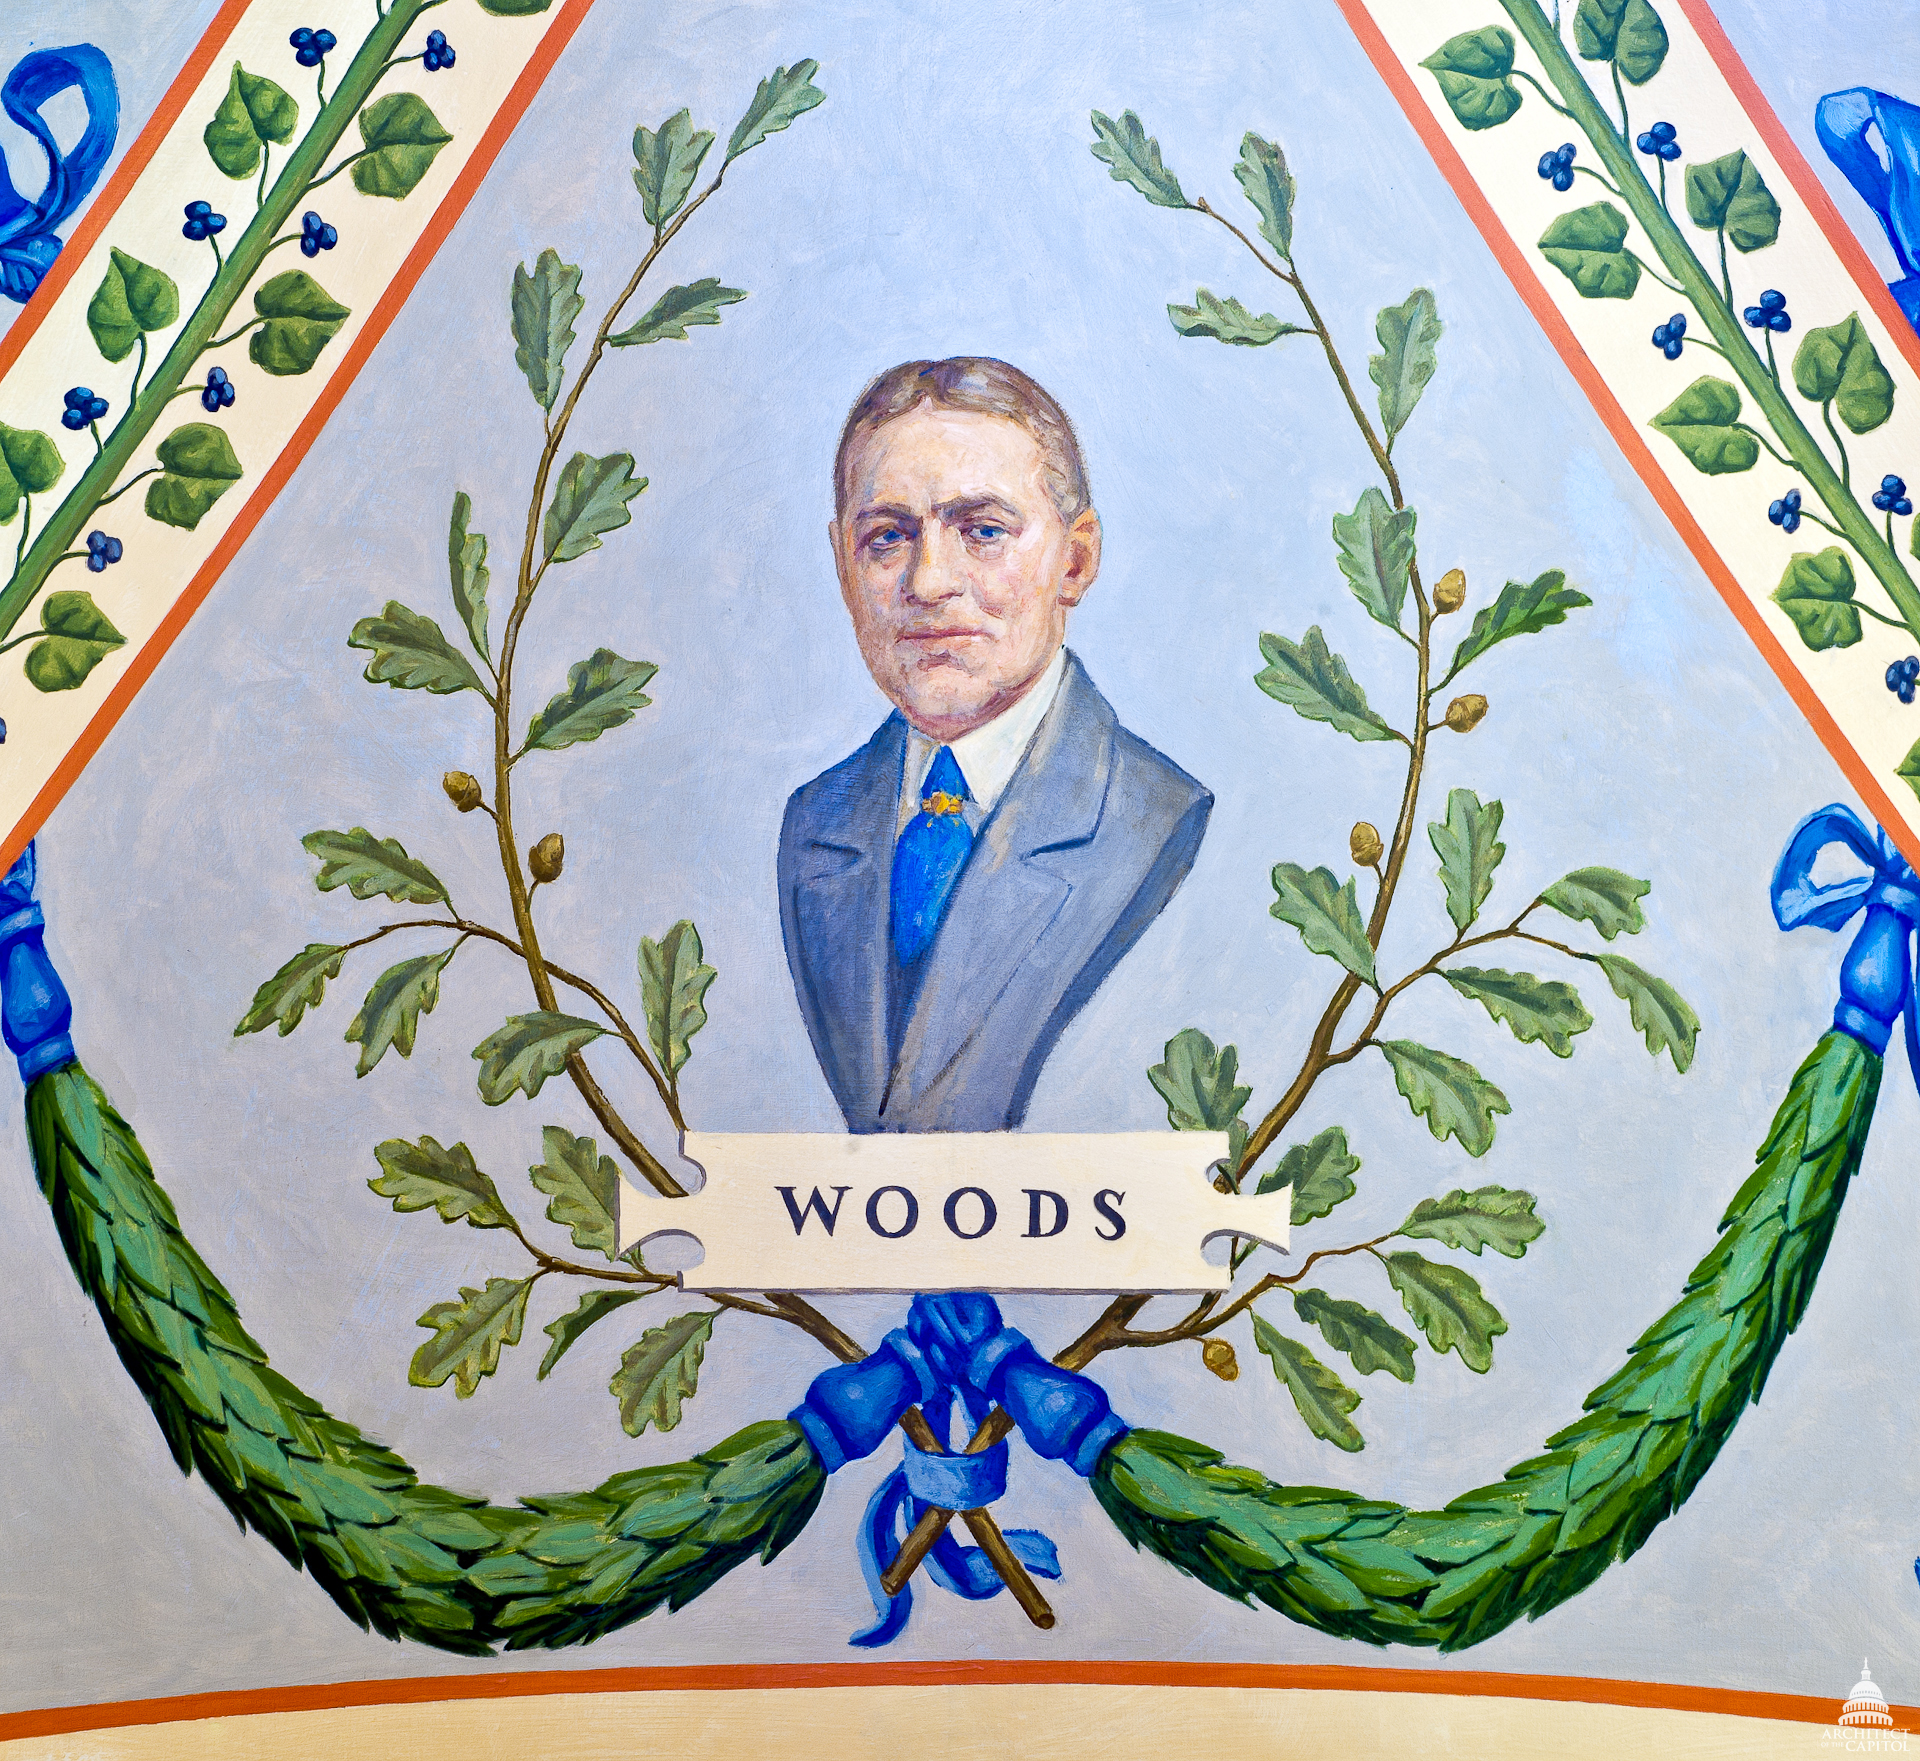 Elliott Woods' painted portrait in the U.S. Capitol's Cox Corridors.